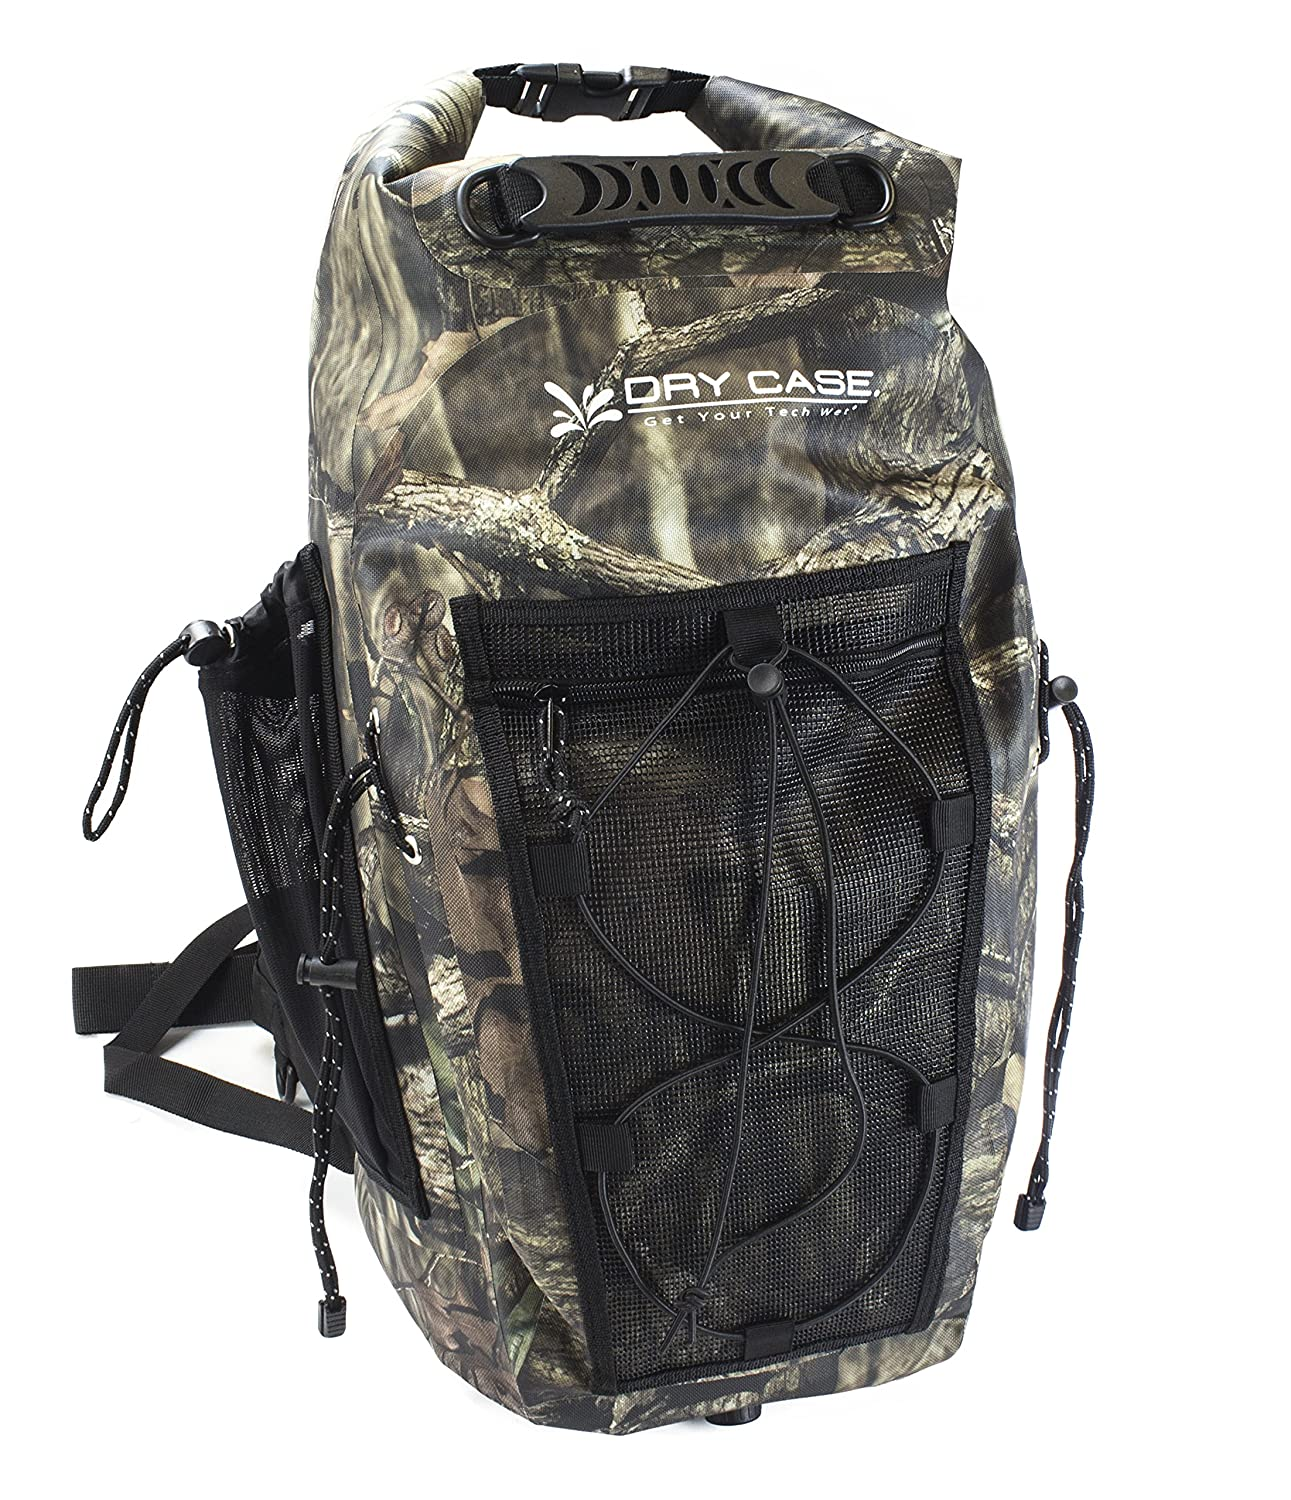 DryCase Waterproof Backpack, 35 L, Camo by Dry CASE   B00METIOBM